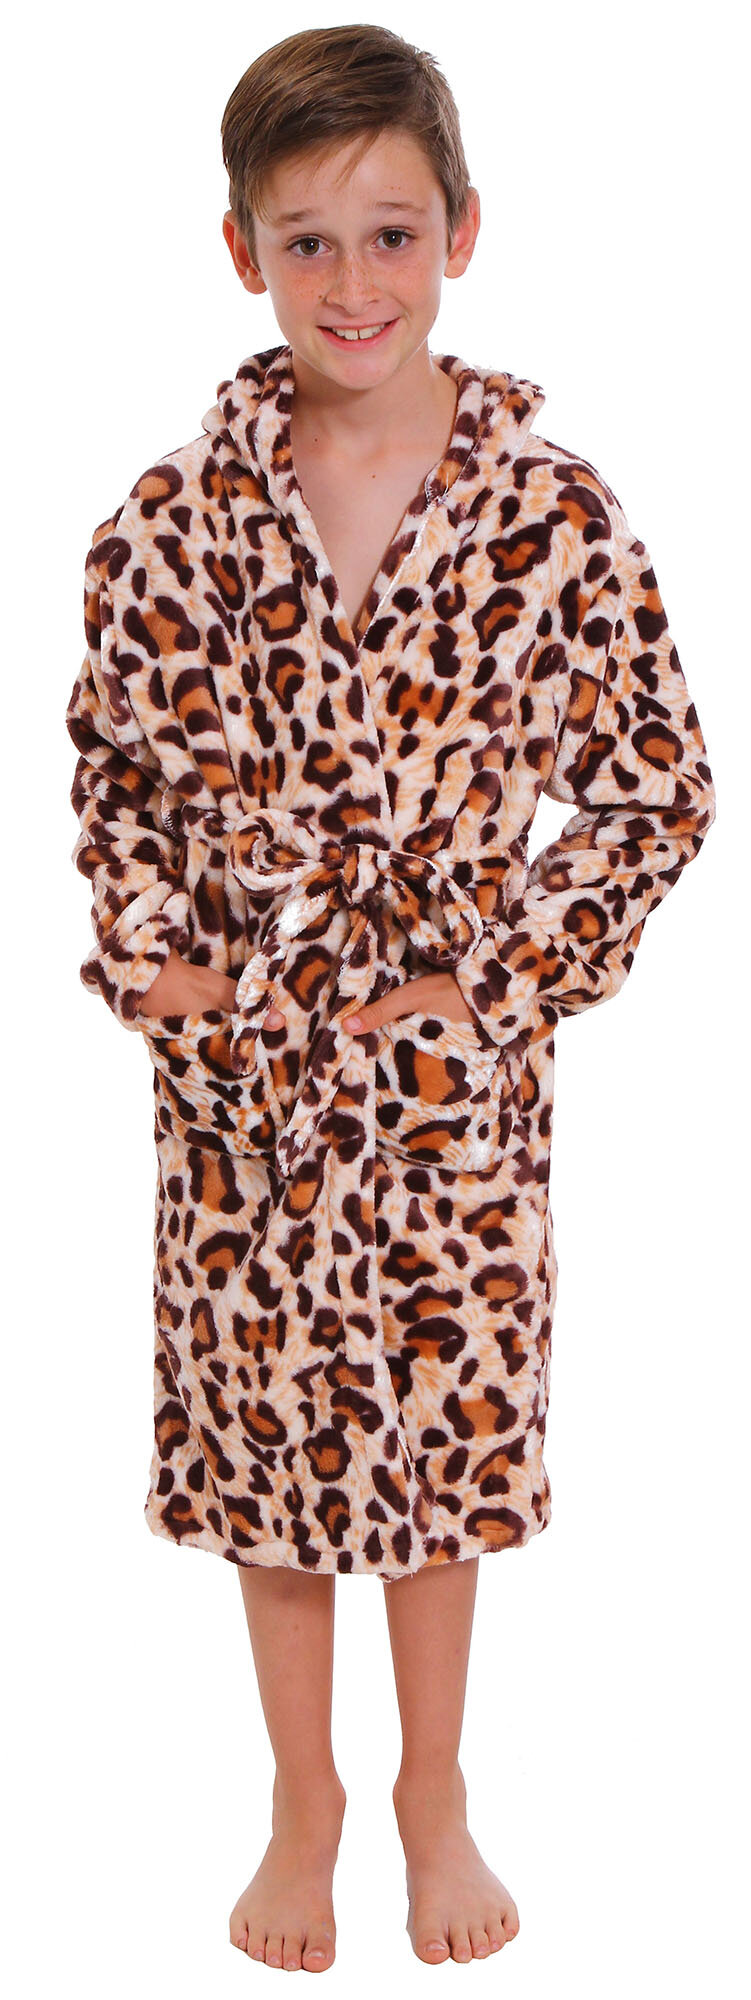 8be426485b Zoomie Kids Geurie Children s Animal Print Terry Cloth Bathrobe ...